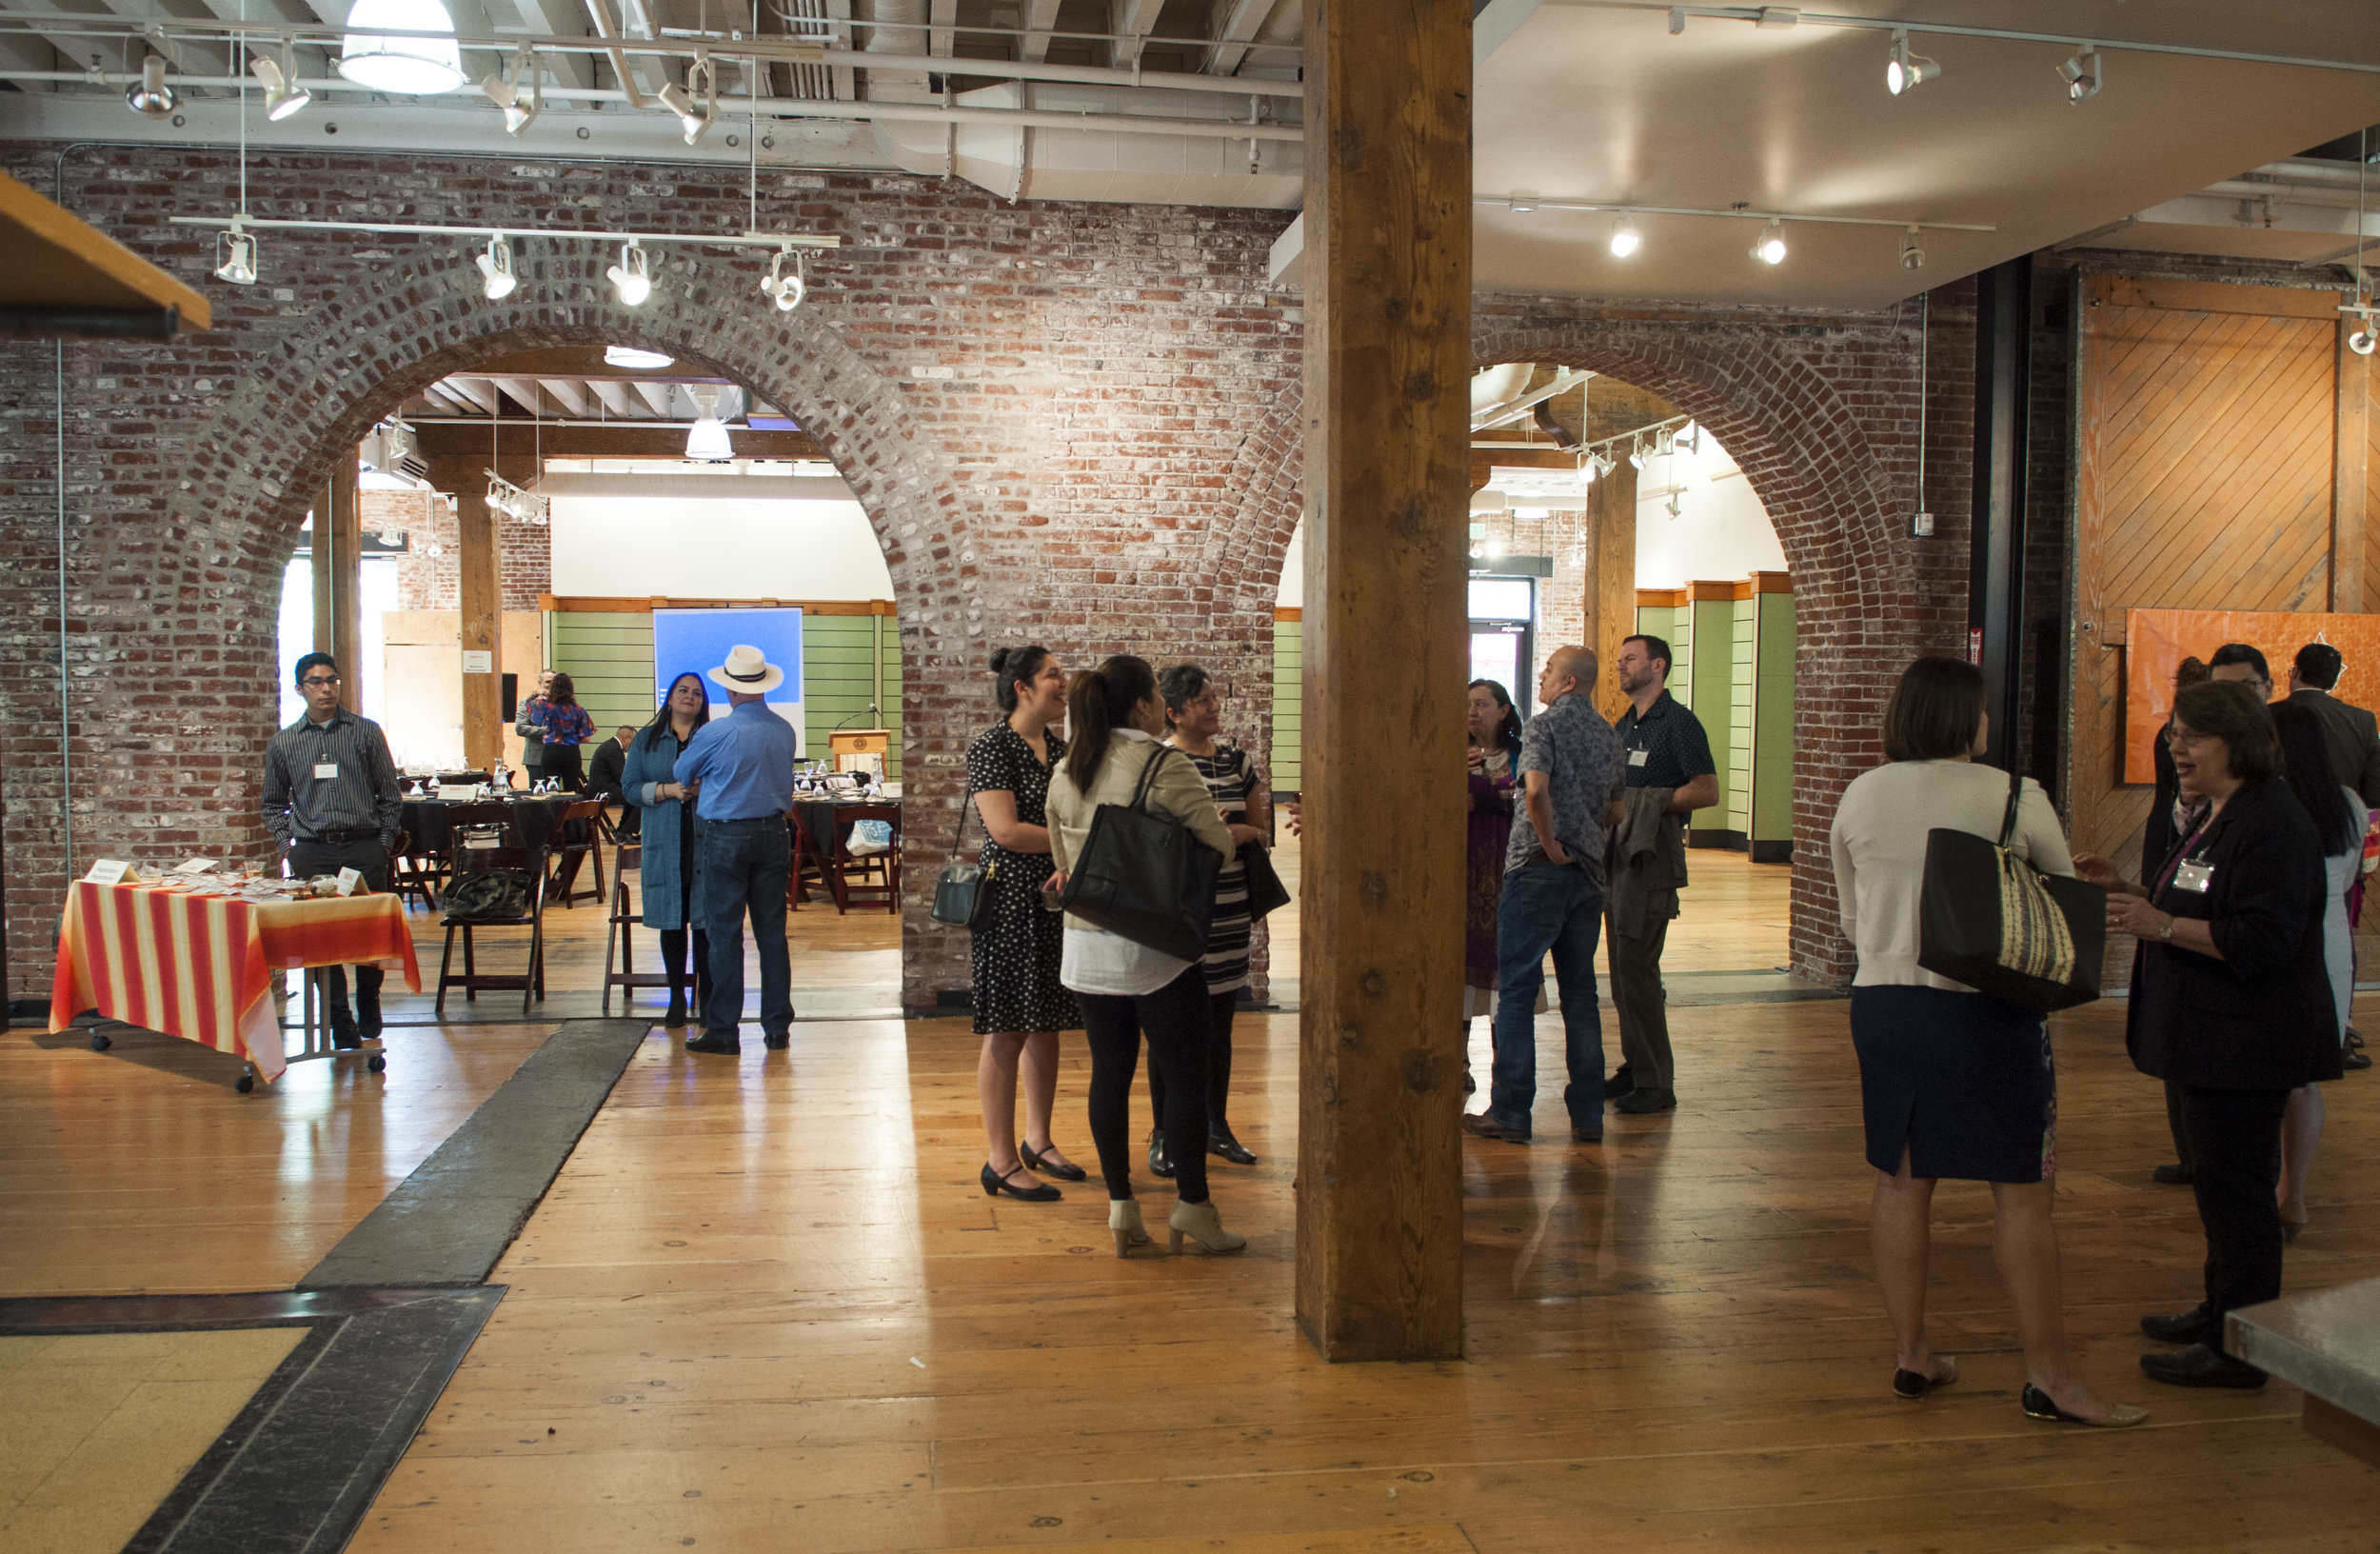 Thank you  Ecotrust  for letting us celebrate in your beautiful space!